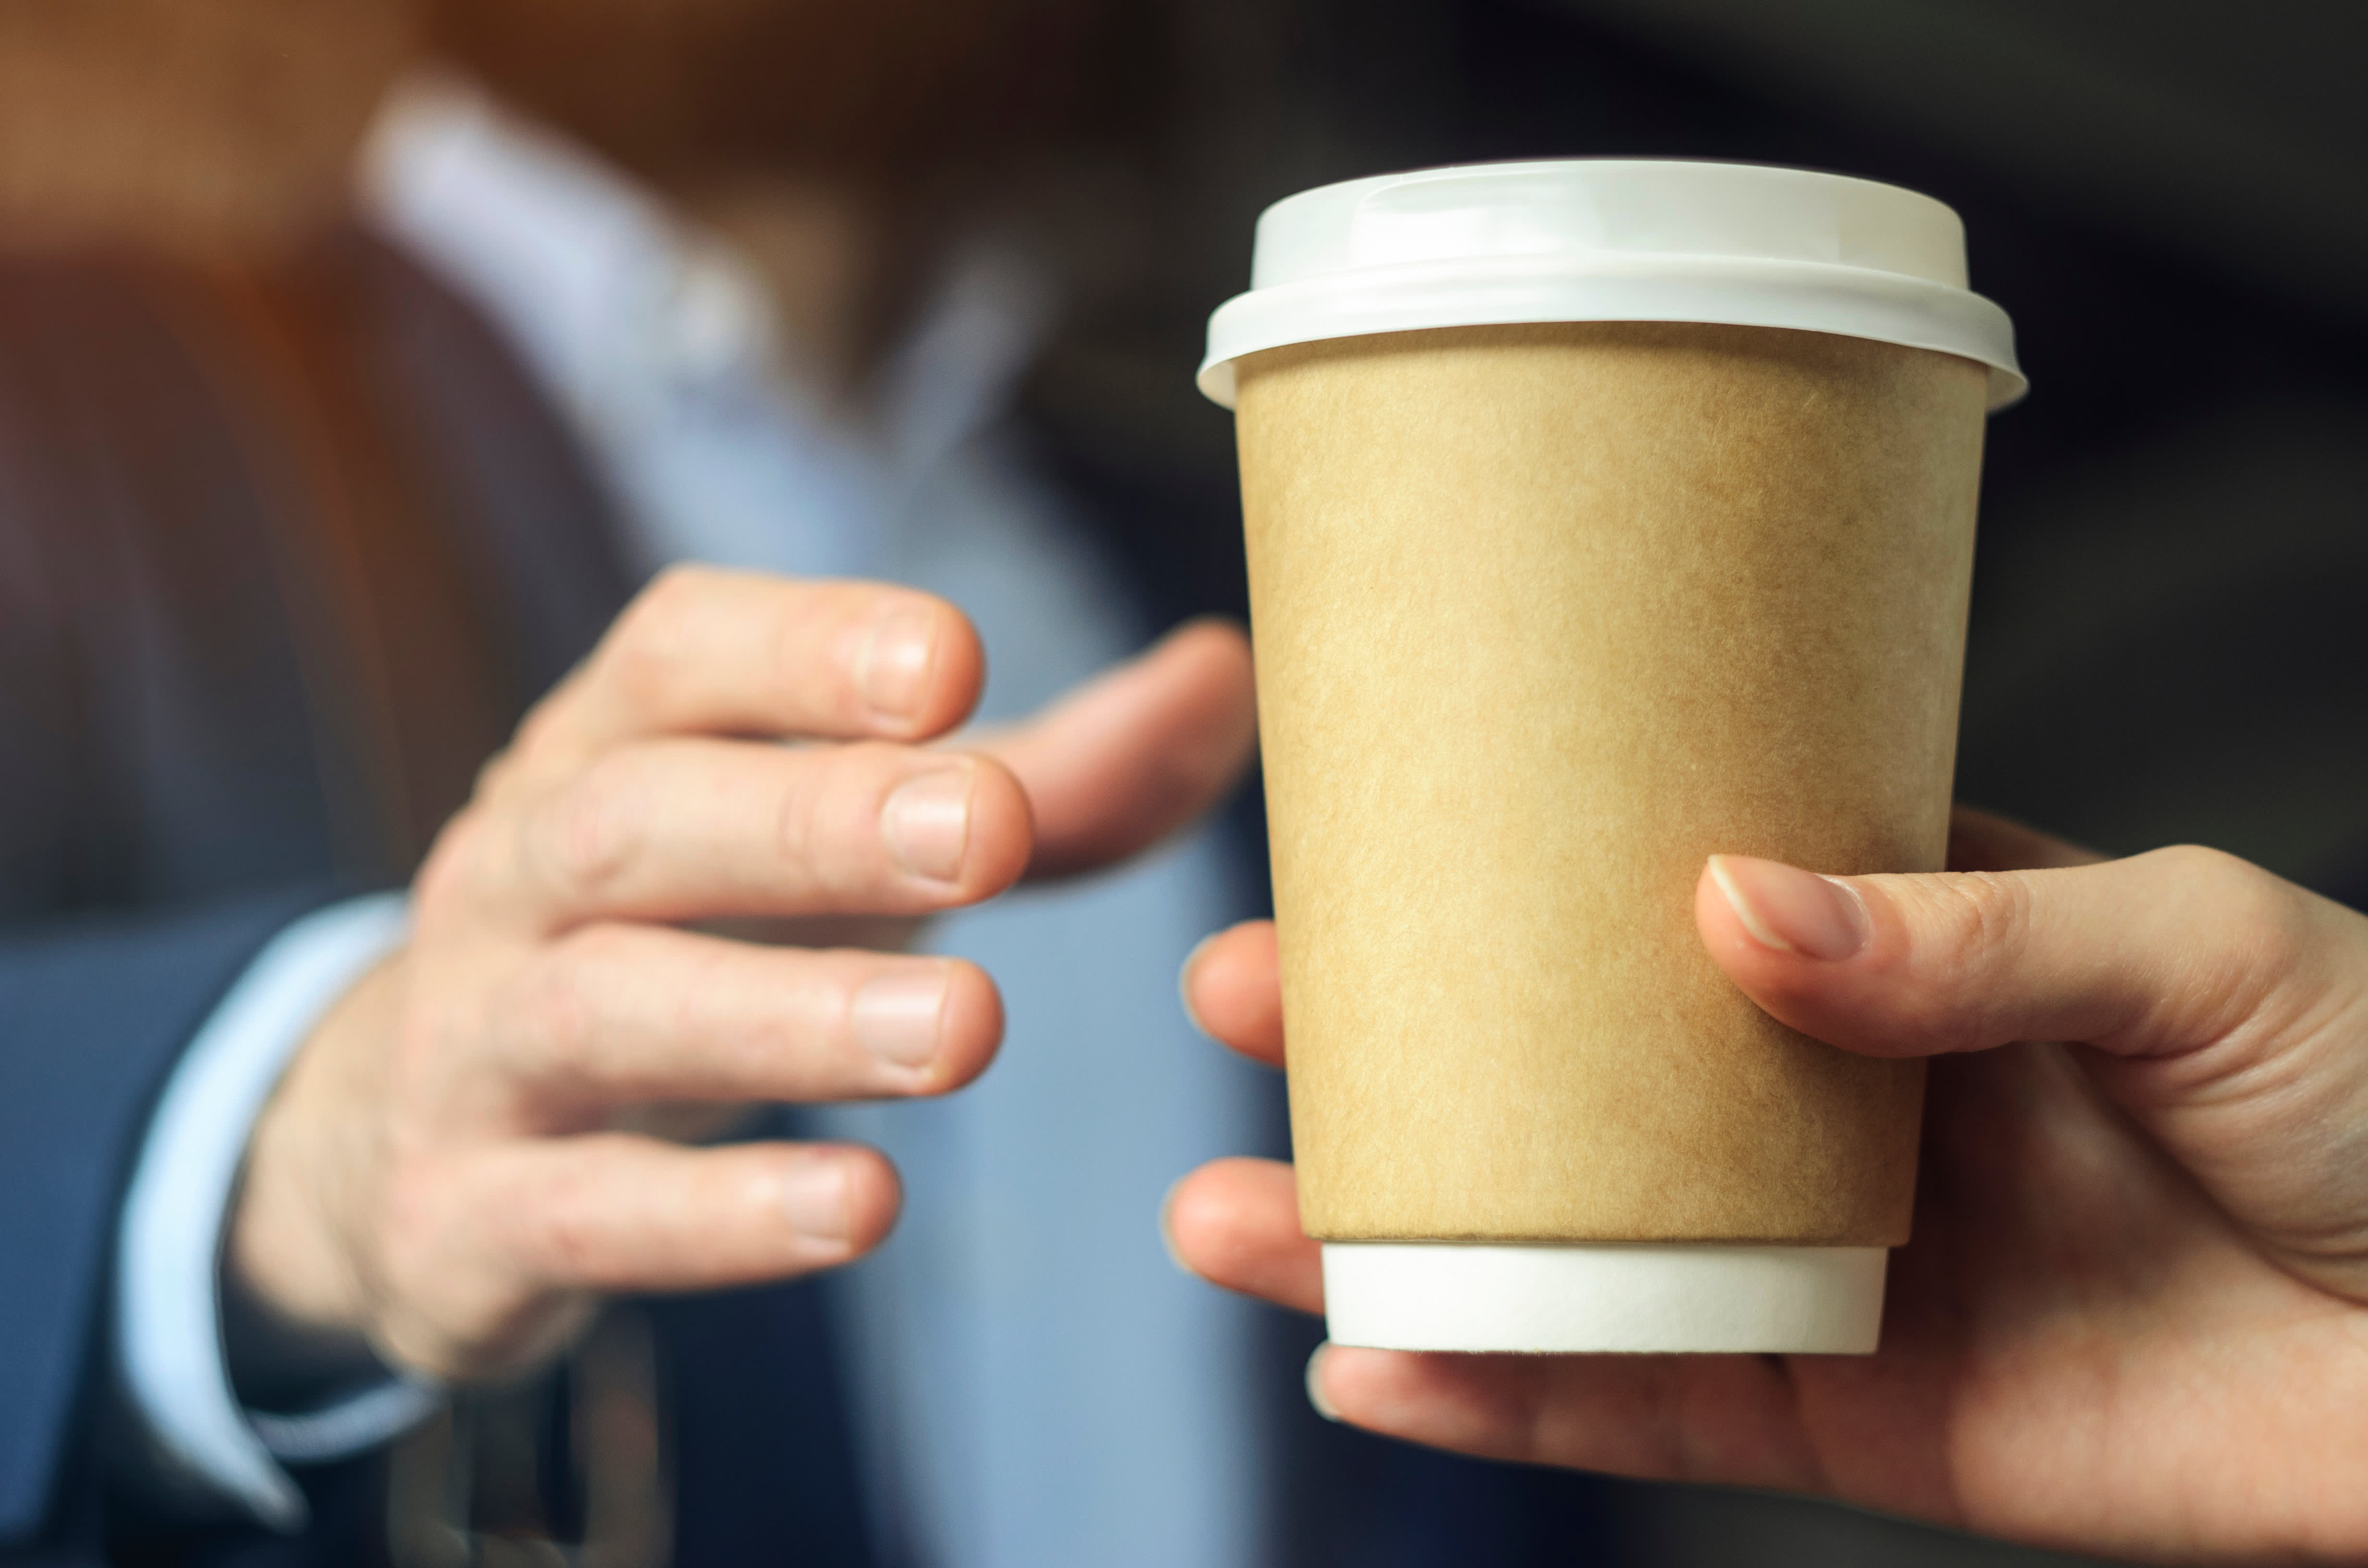 Could Your Coffee Habit Really Be Costing You a Million Dollars? One Angry Finance Expert Thinks So.